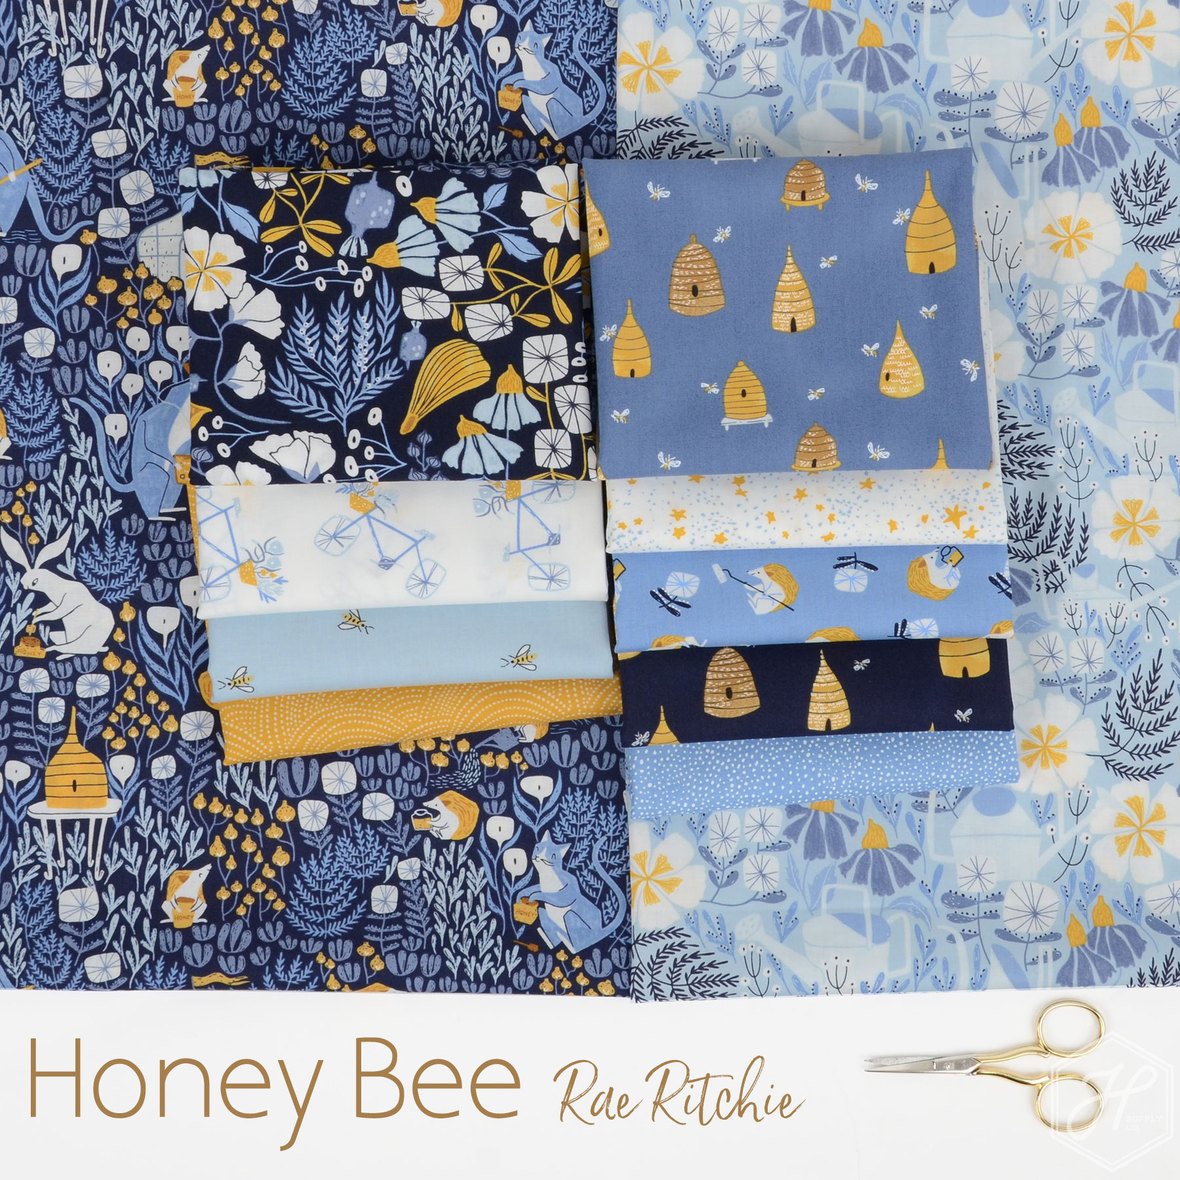 Honey-Bee-Fabric-Poster-Rae-Ritchie-for-Dear-Stella-at-Hawthorne